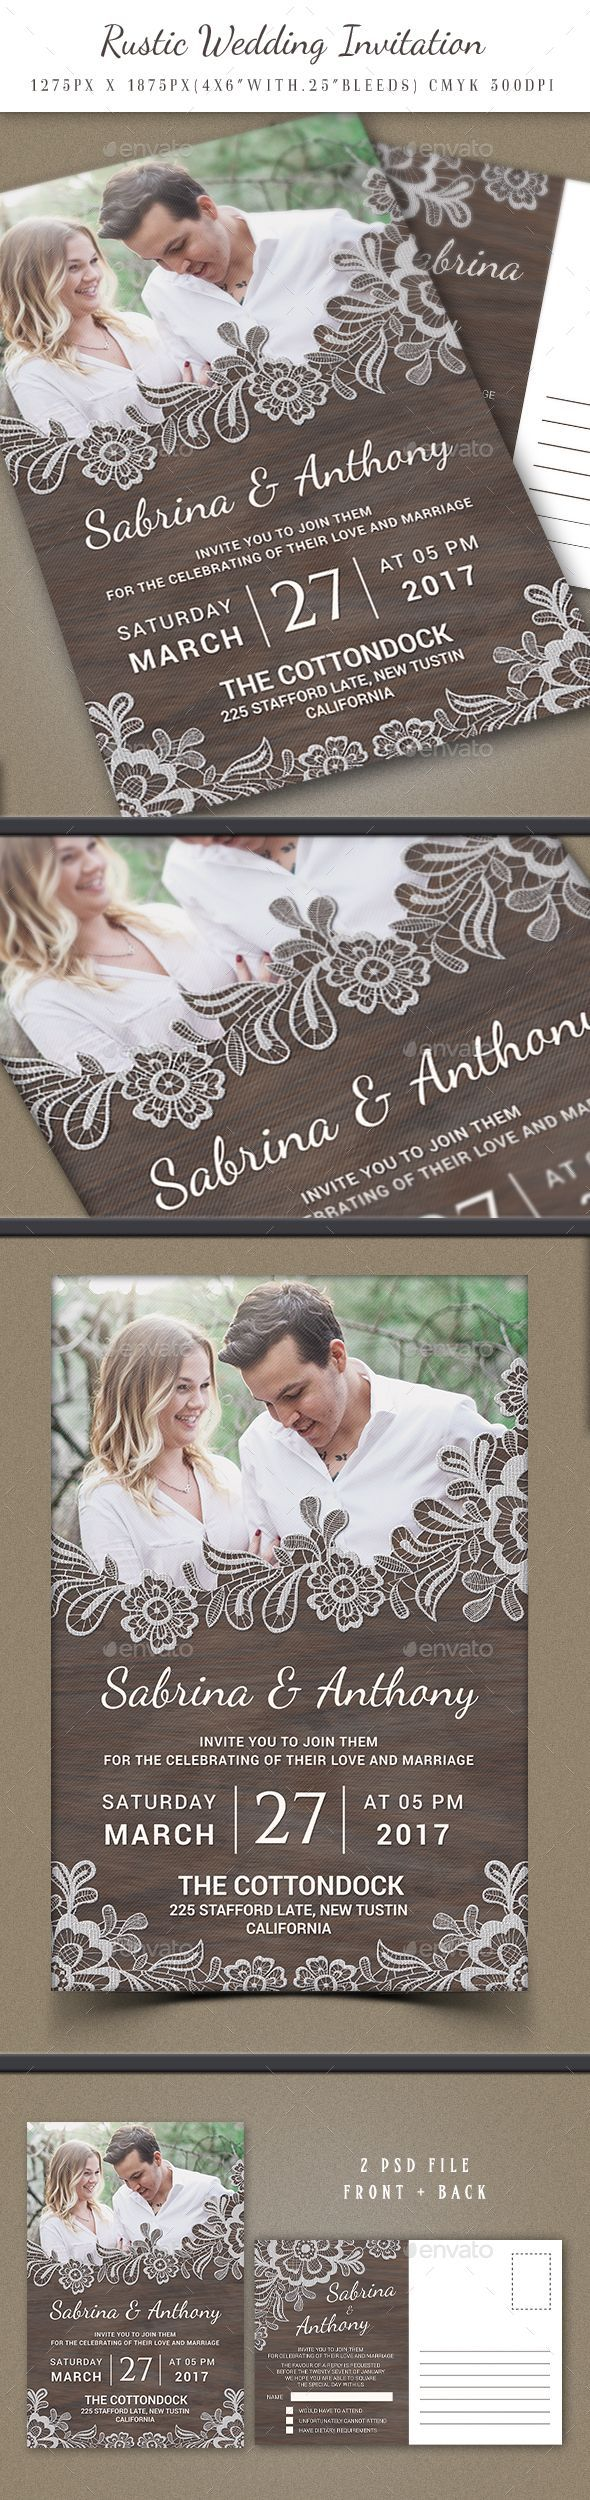 free wedding invitation psd%0A Rustic Wedding Invitation by Goodgraph Rustic Wedding InvitationThe PSD  file is setup at     px x     px